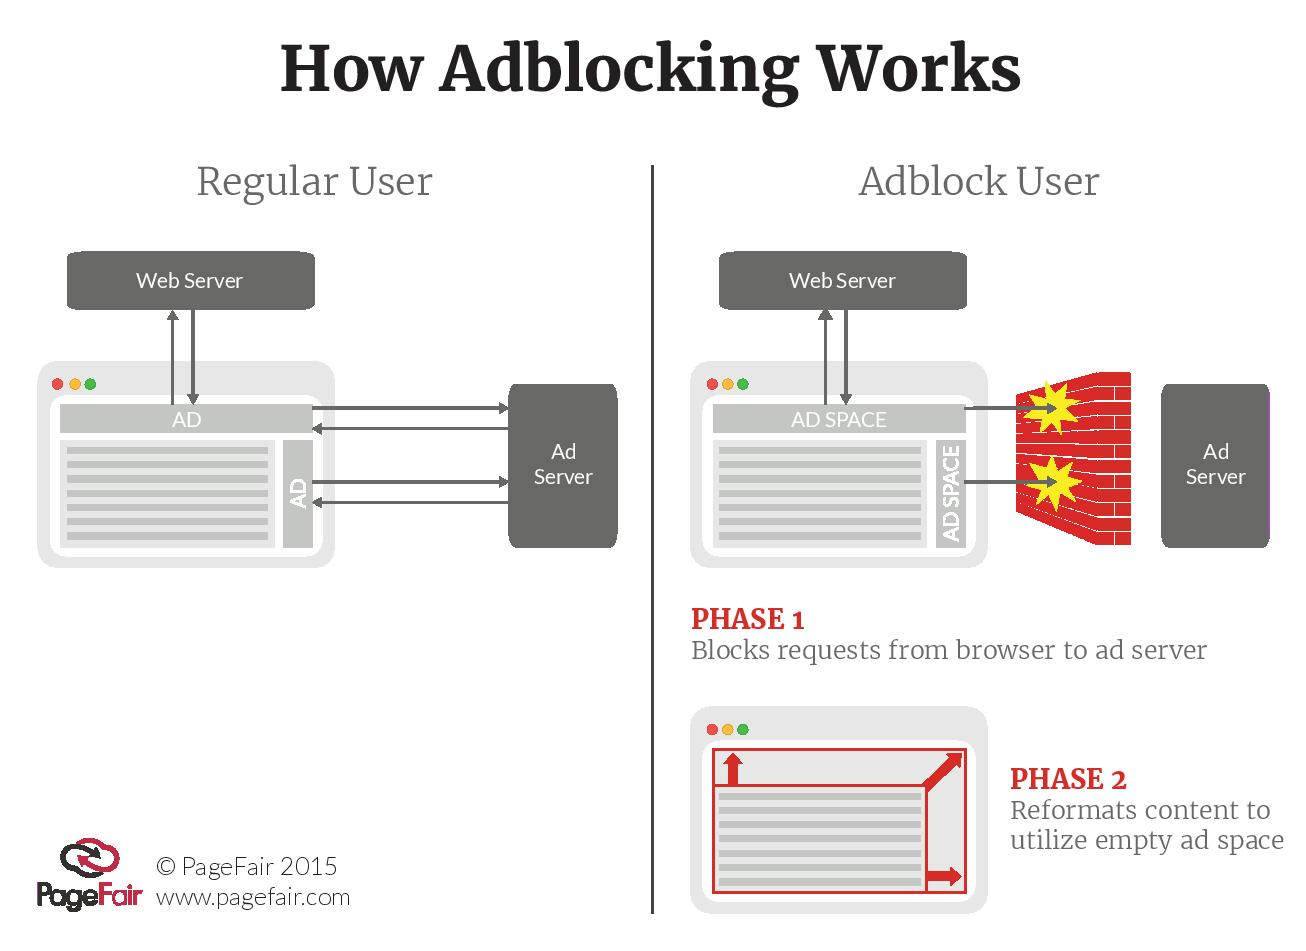 Comment ca marche Adblocker